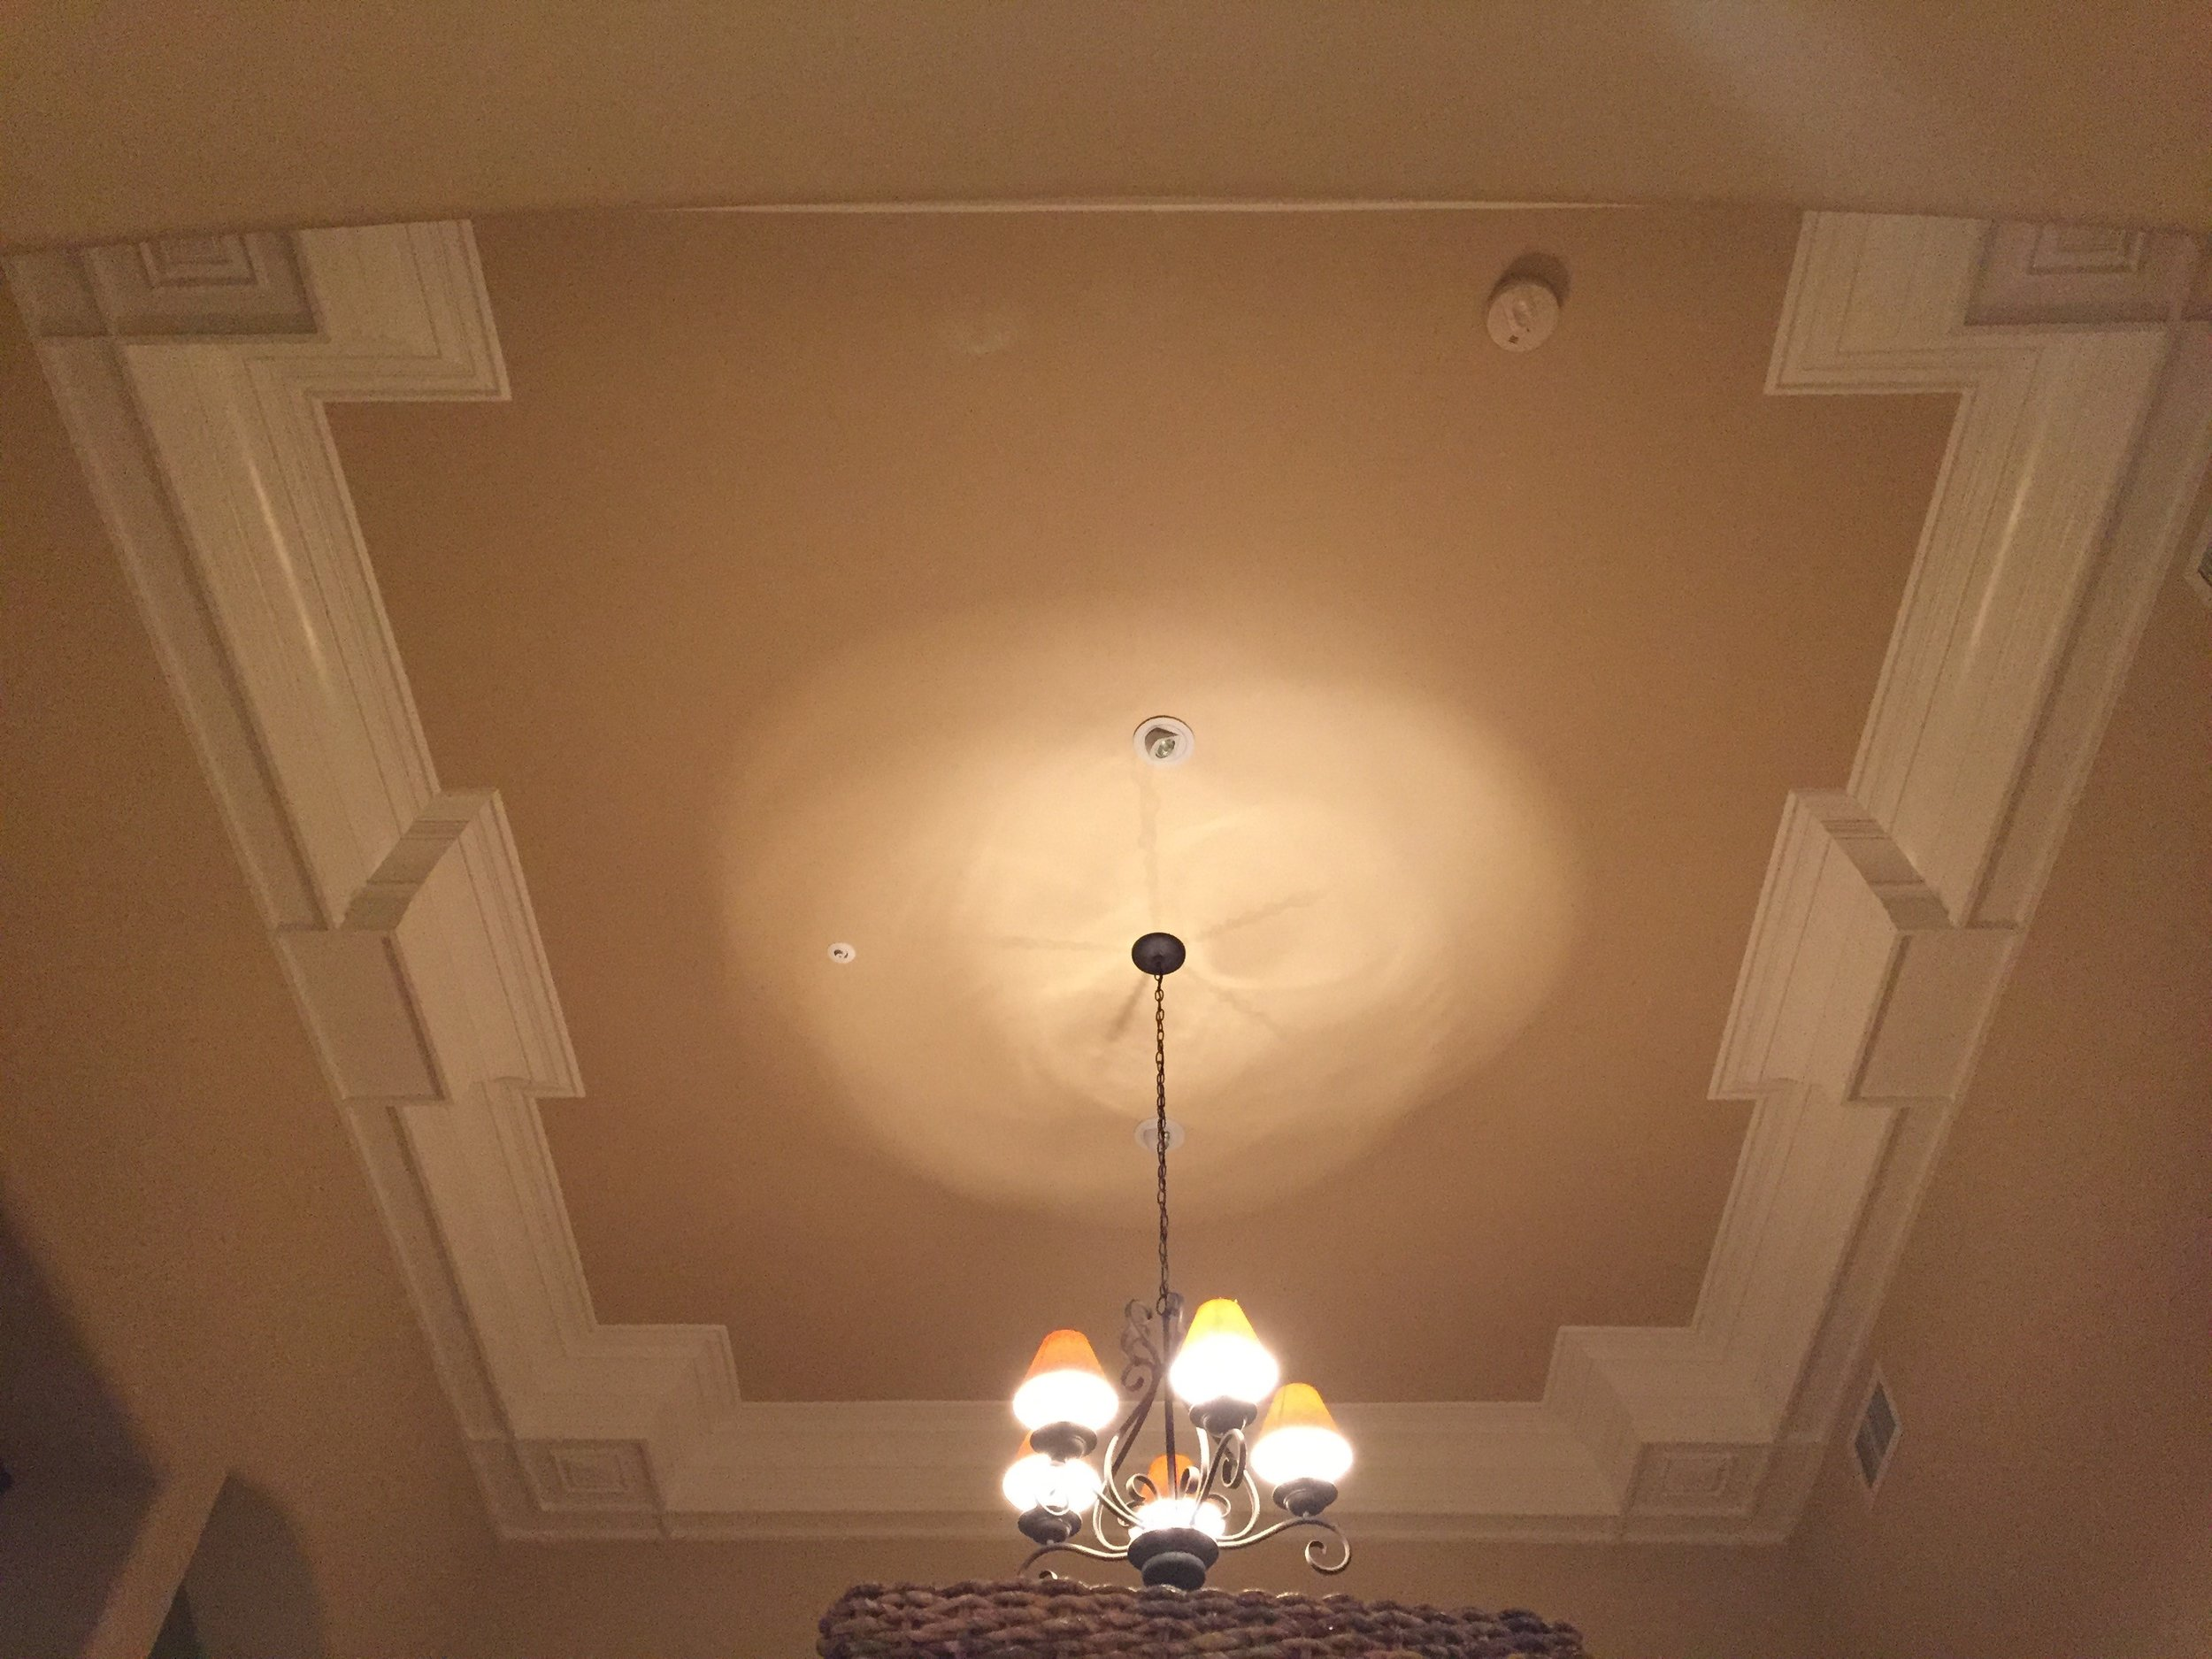 Beam and crown molding ceiling- 12 ft in the air. Project located in Scottsdale, AZ